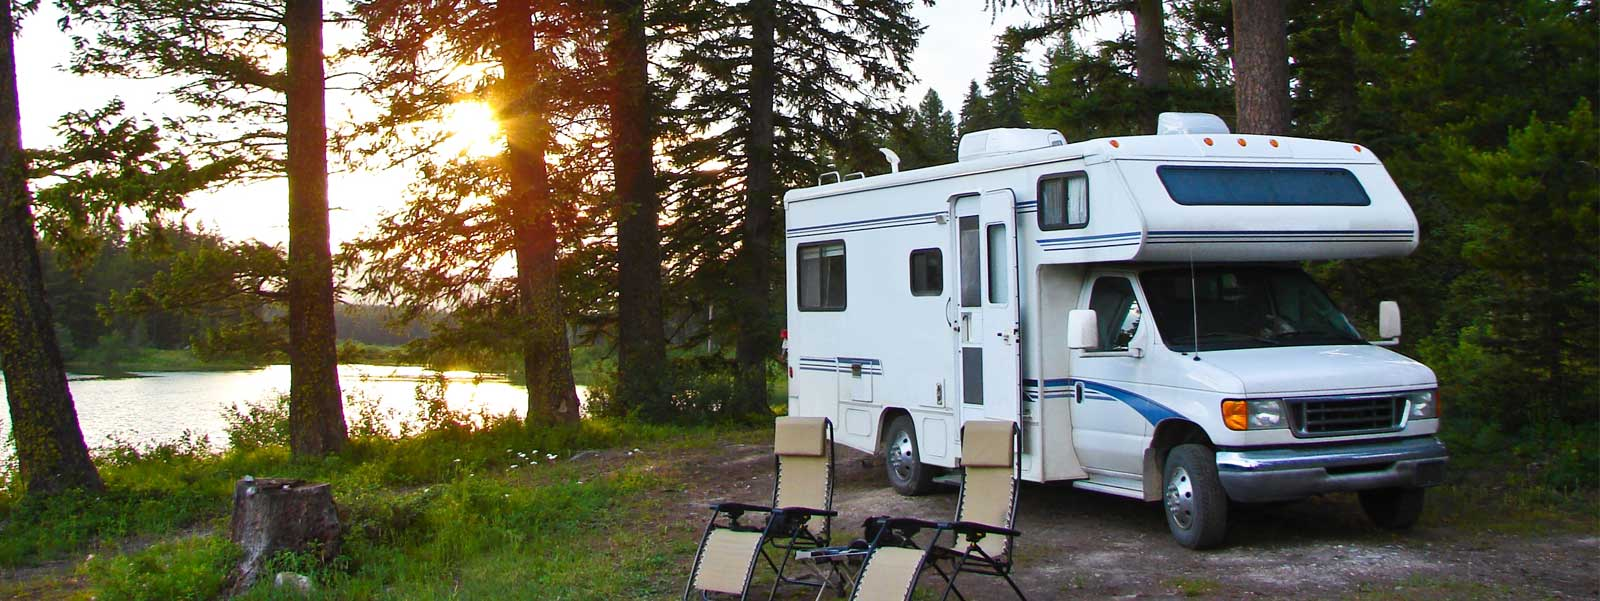 RV Repair by J&S RV Service in Portland, OR